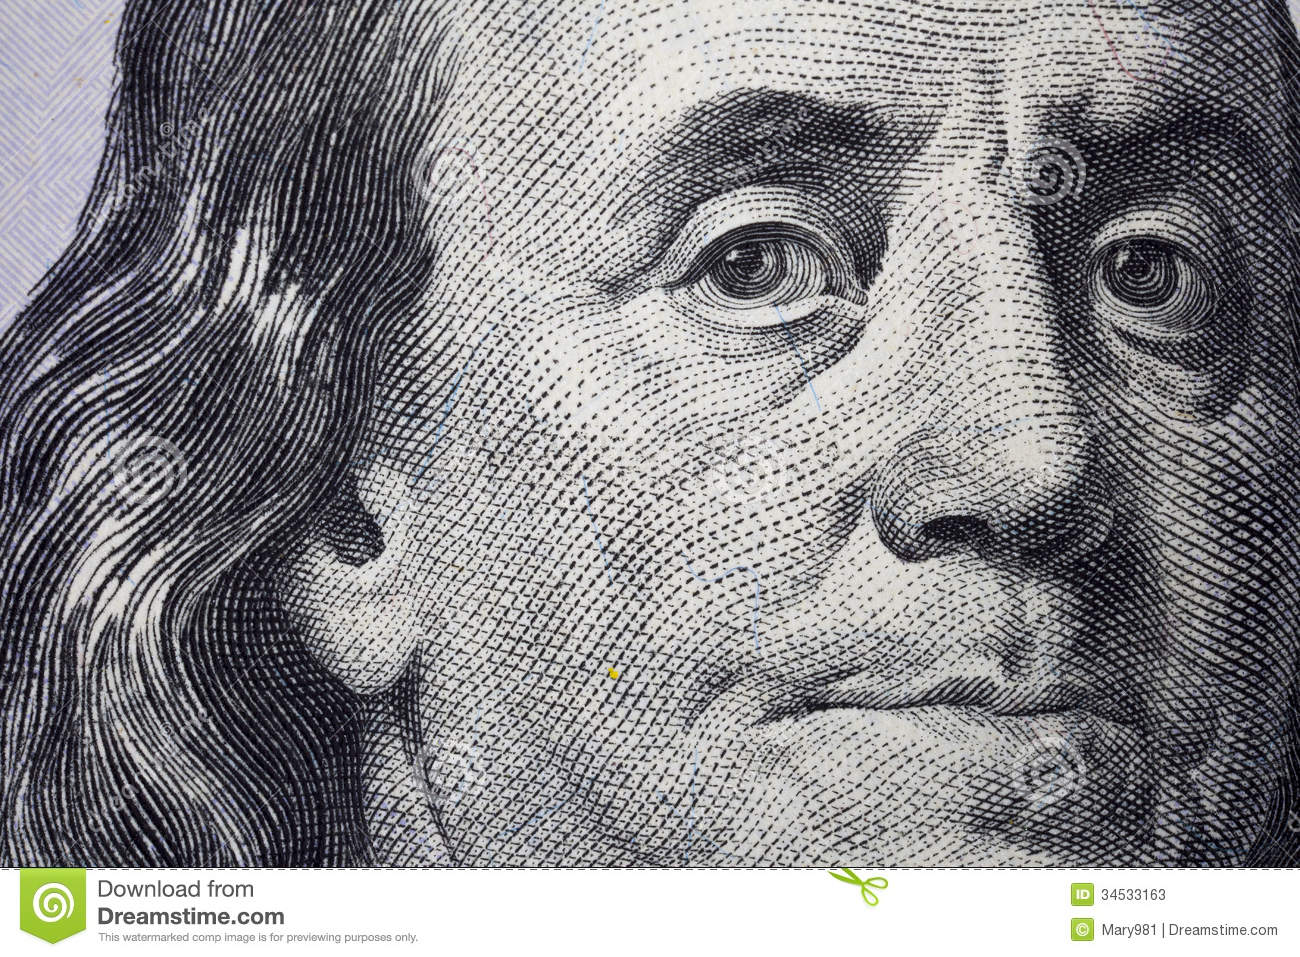 New 100 Dollar Bill Us Currency Stock Photos Image 34533163